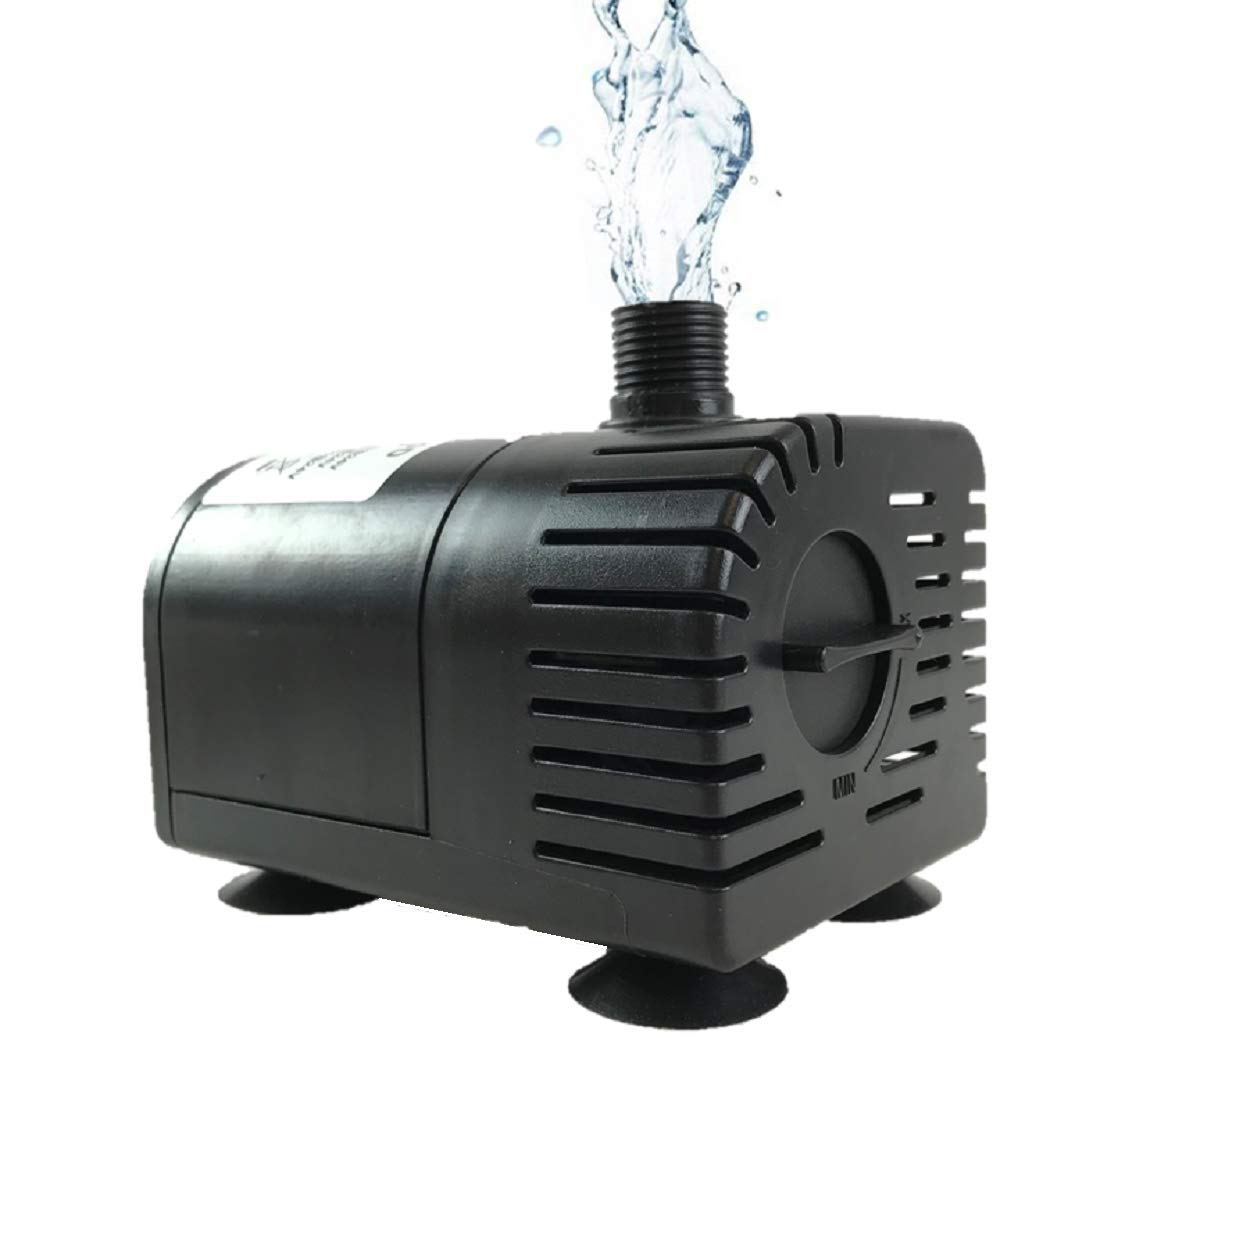 AEO Dry-Run Protection 12V-24V DC Brushless Submersible Water Pump, 410GPH, for Solar Fountain, Fish Pond, and Aquarium